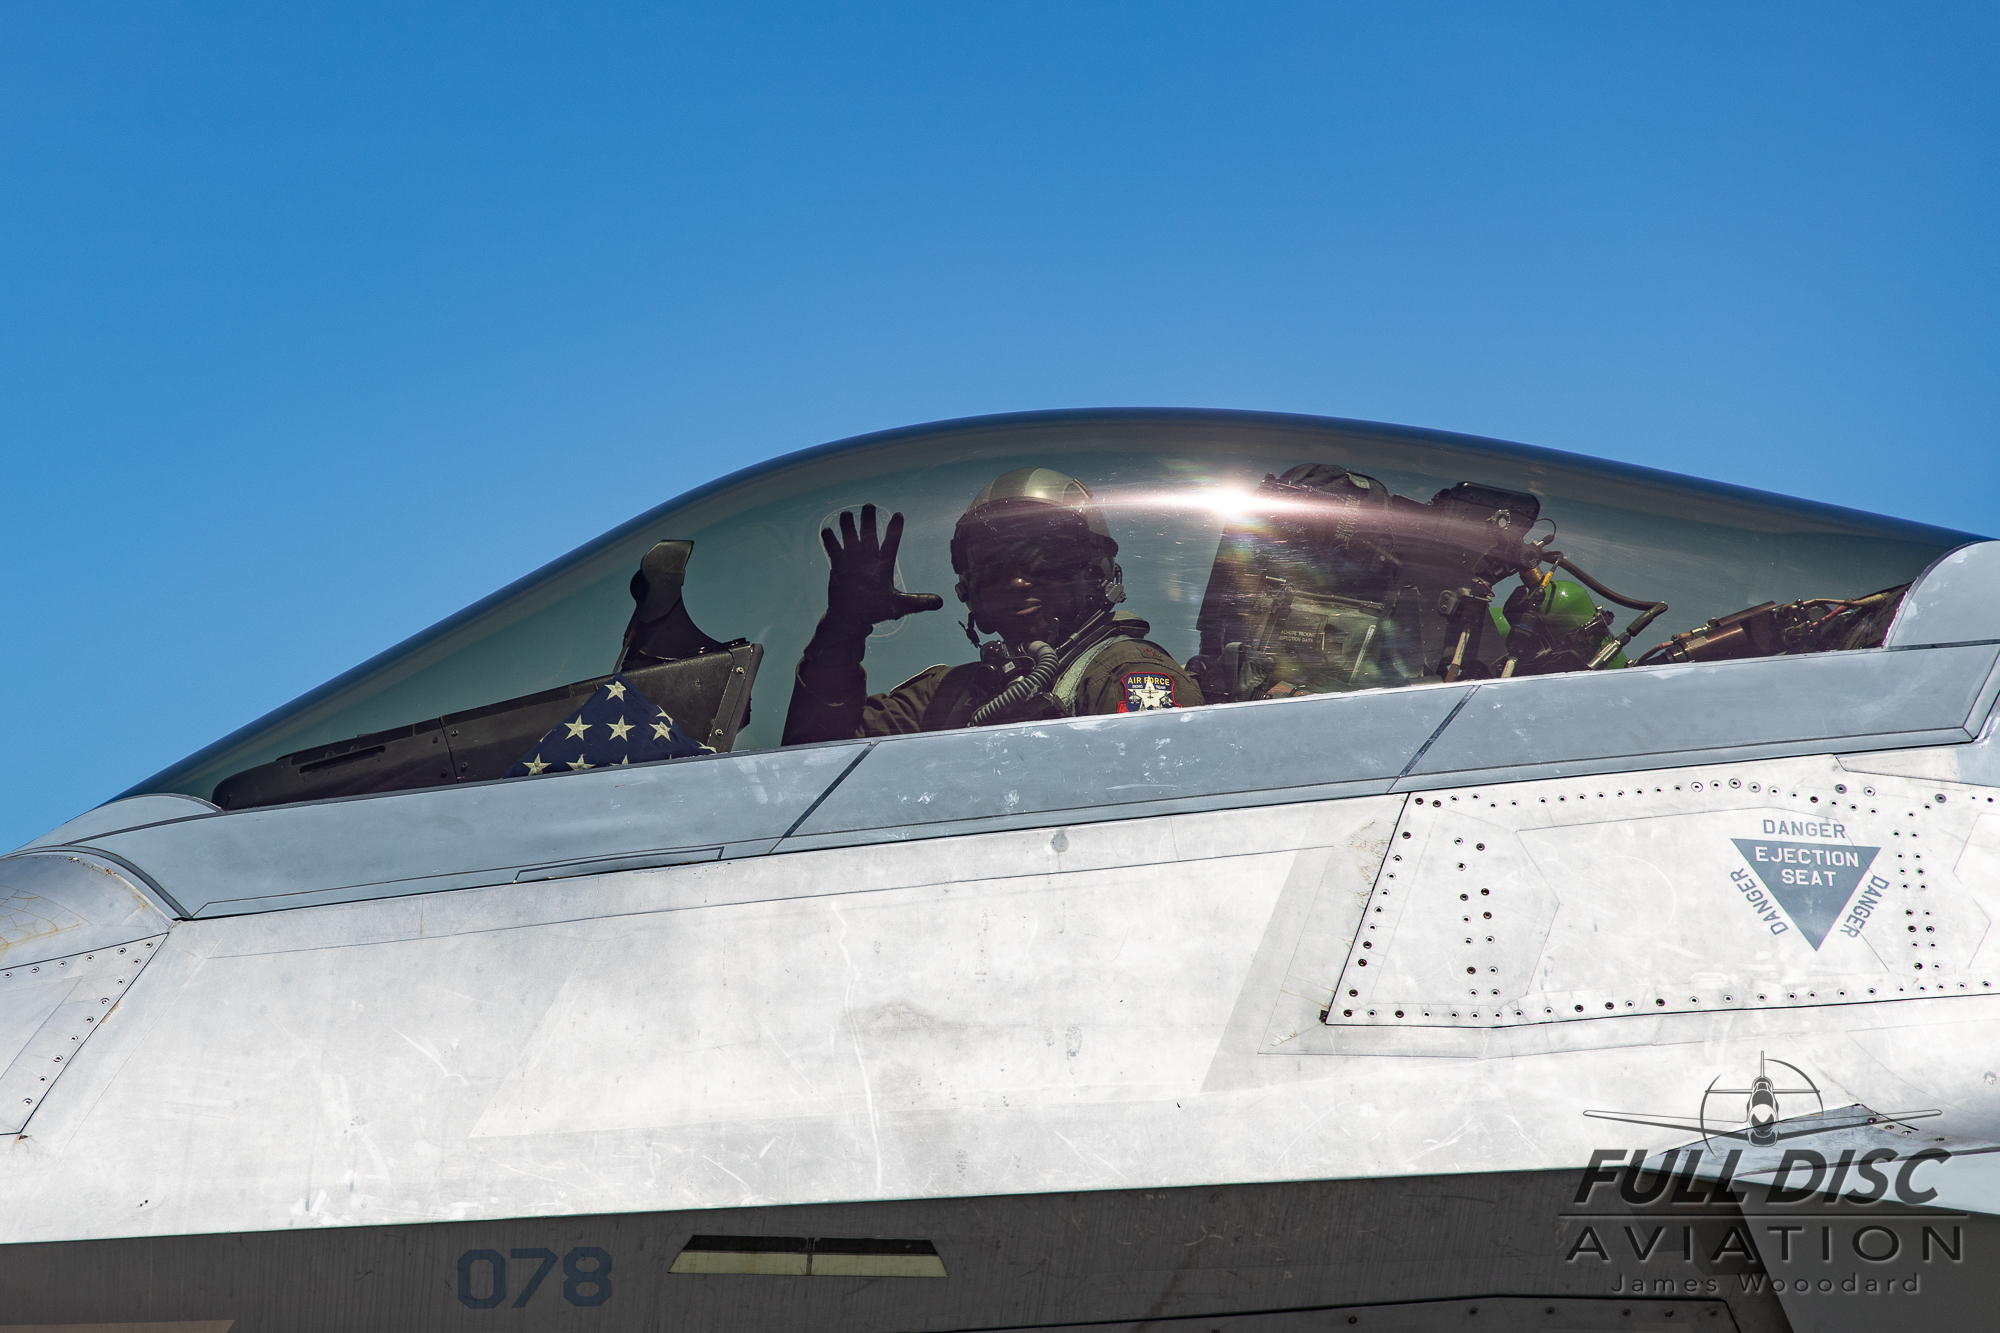 F22DemoTeam_FullDiscAviation_JamesWoodard-April 27, 2019-29.jpg